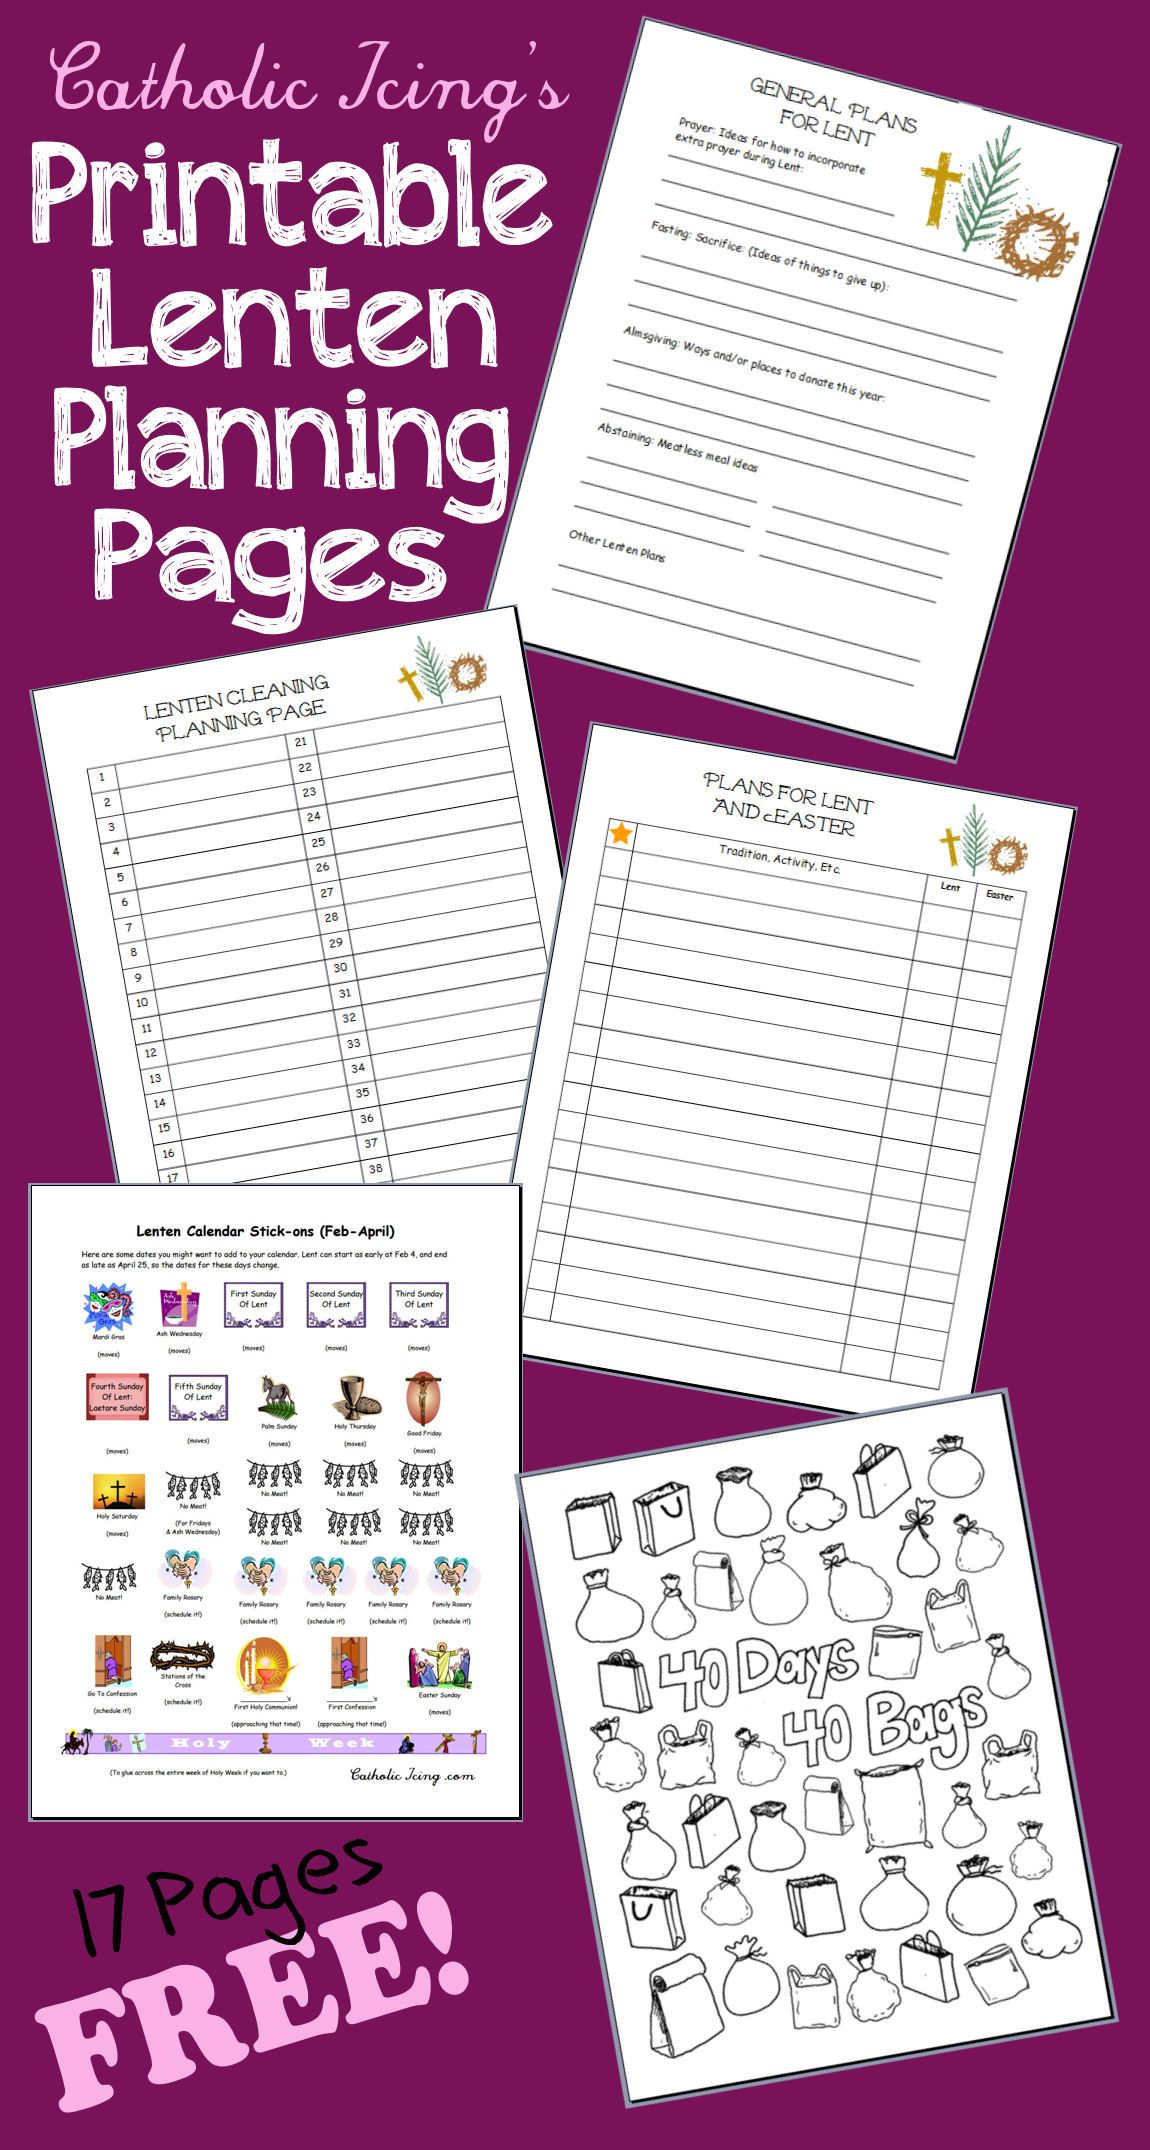 Lenten Planning Pages Free To Print Catholic Icing